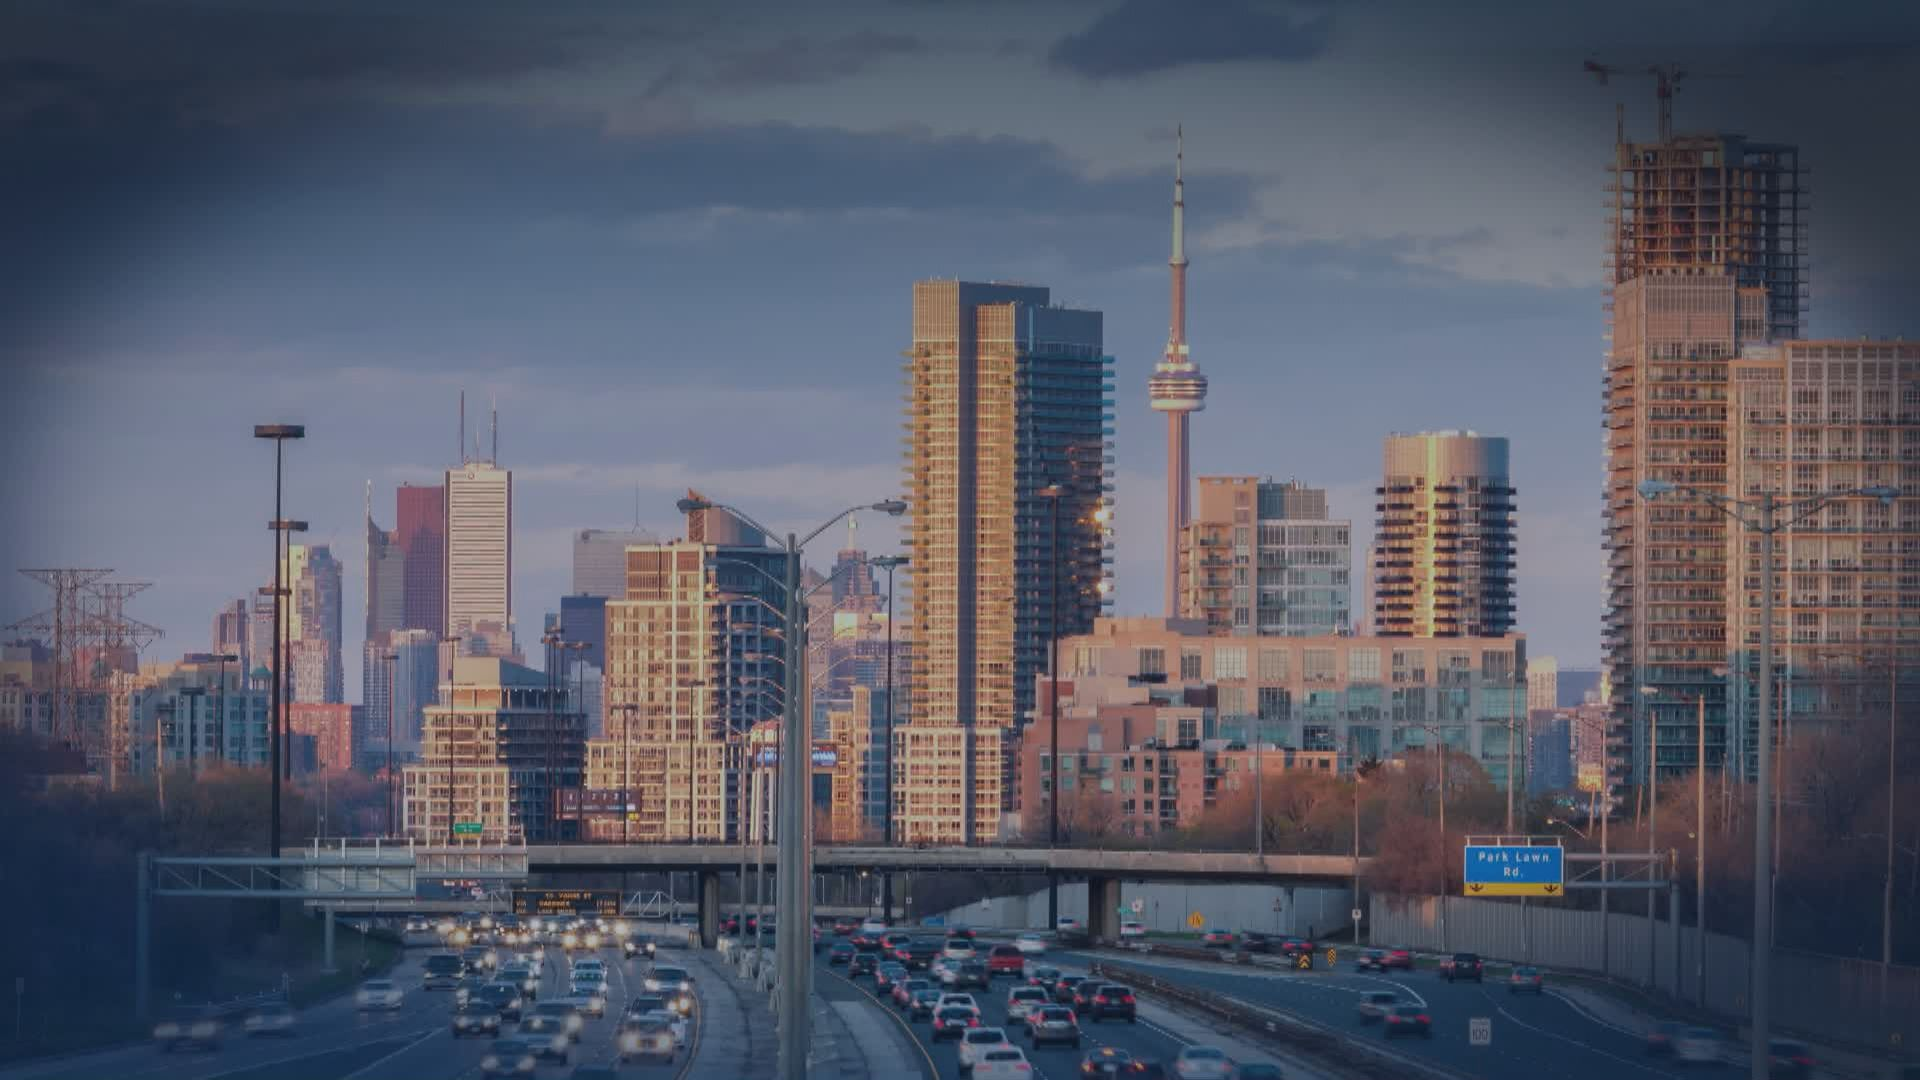 Toronto tourism industry slammed with $8.35B in losses in 12 months